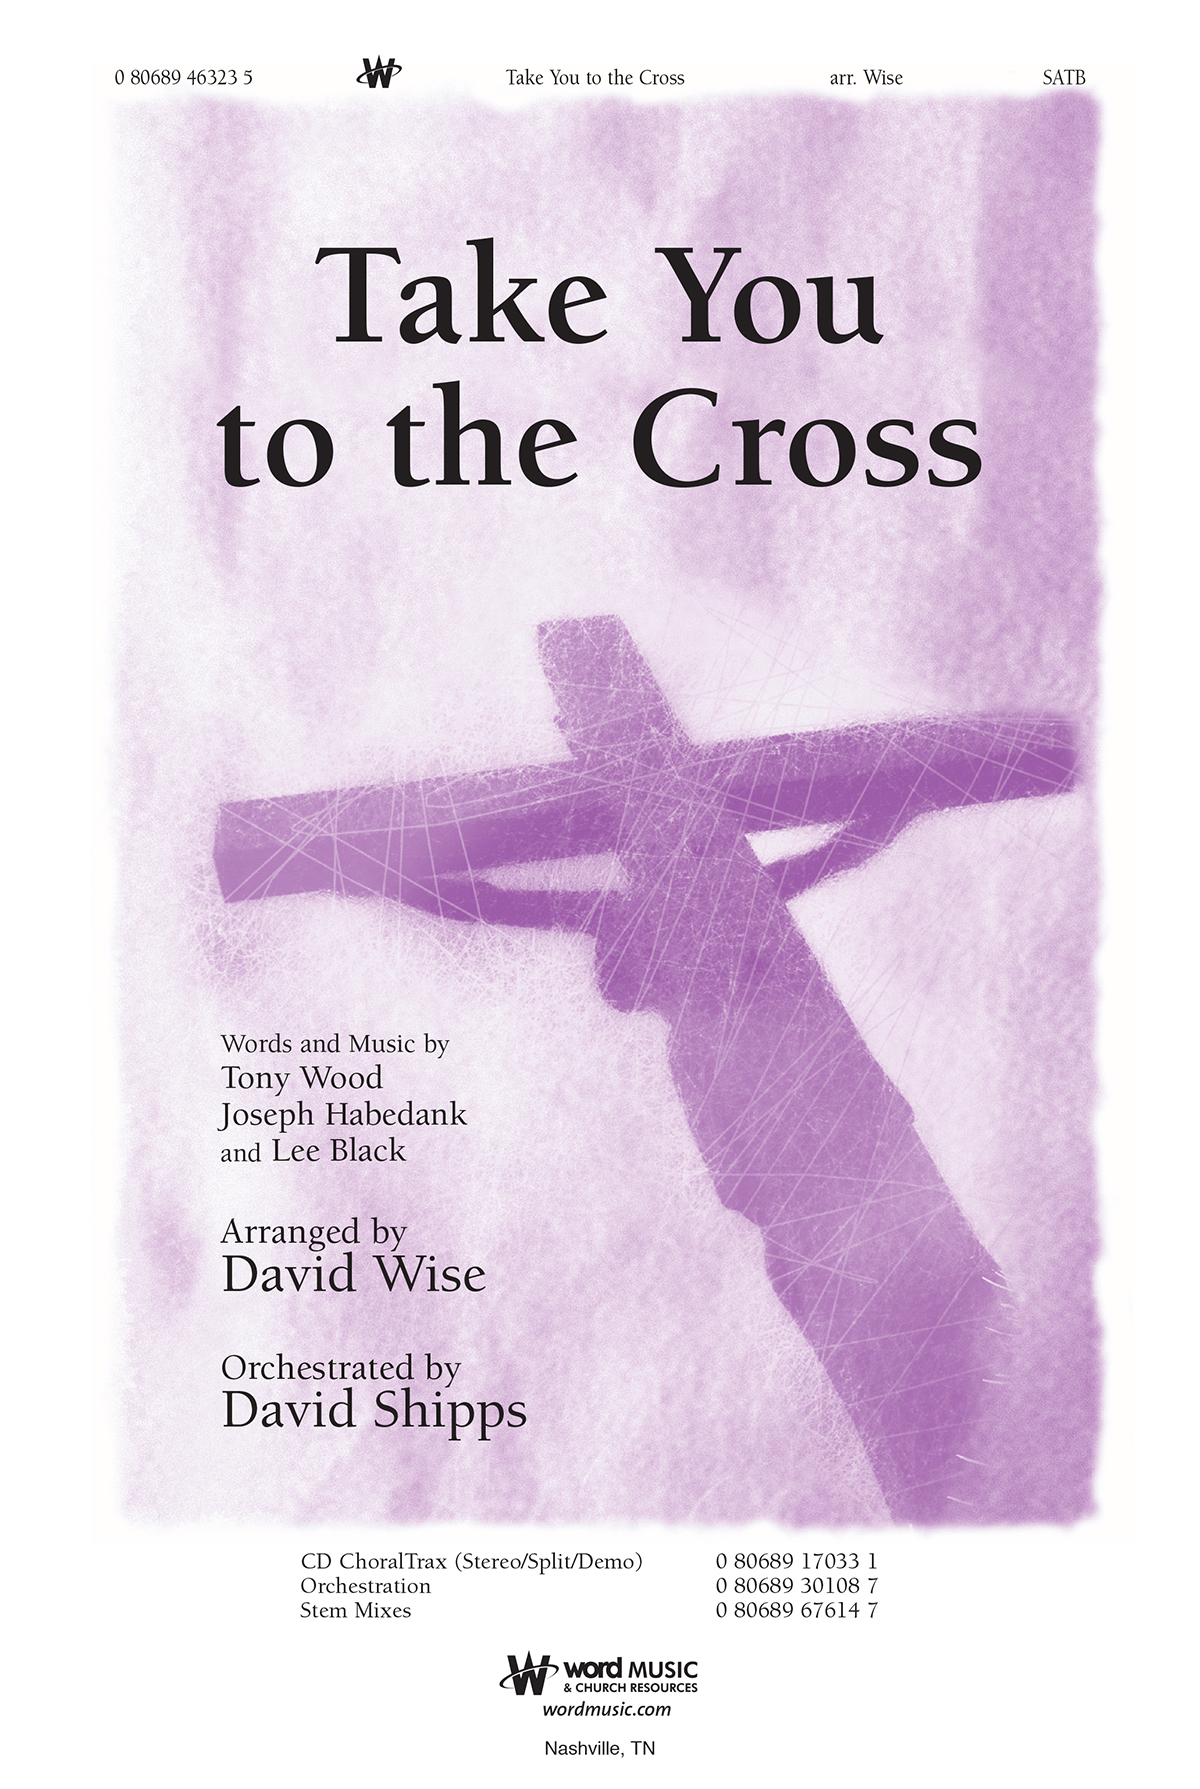 Take You to the Cross